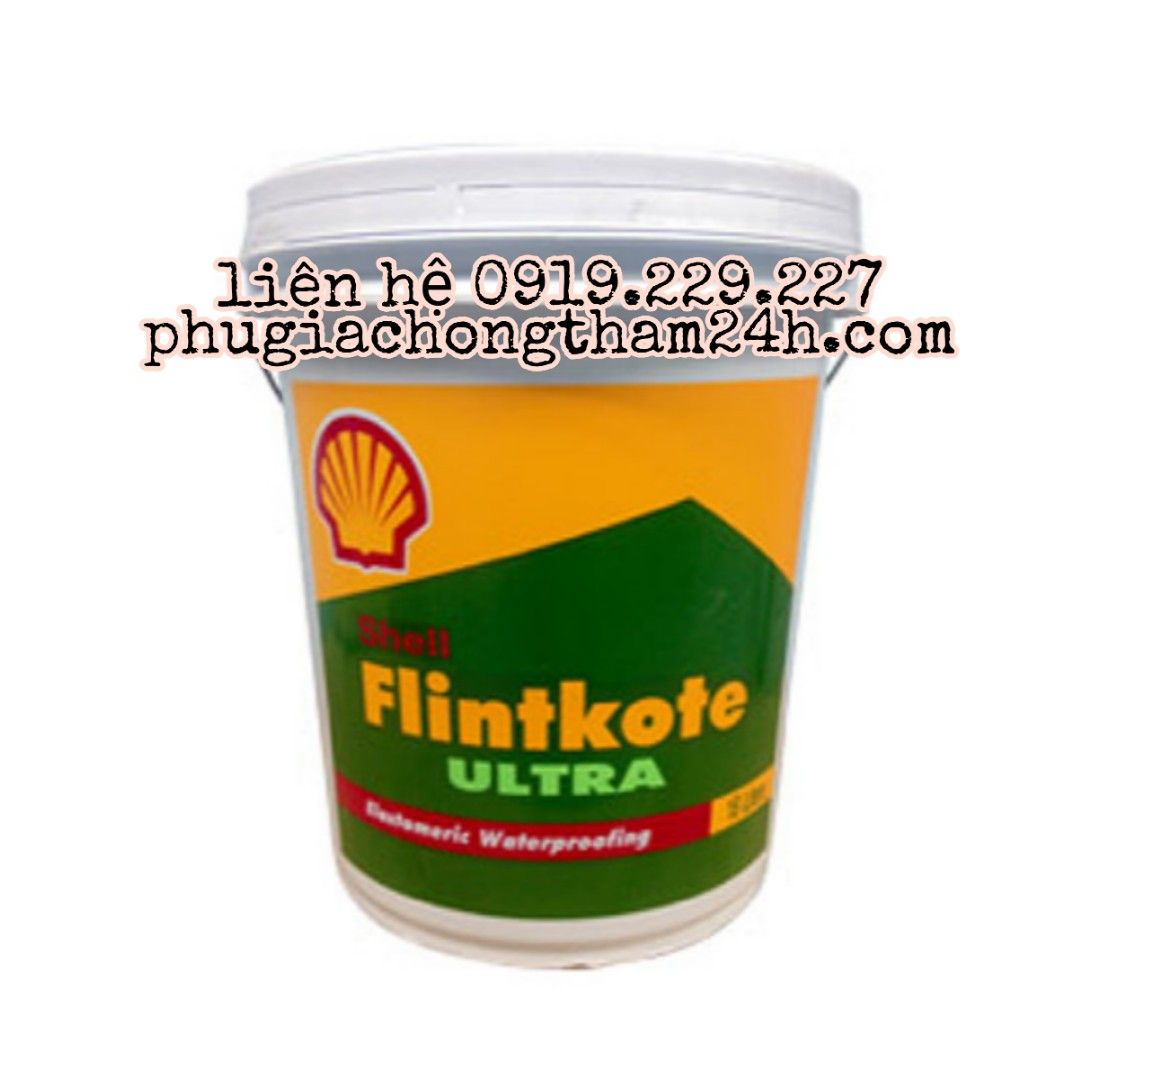 shell flintkote ultra